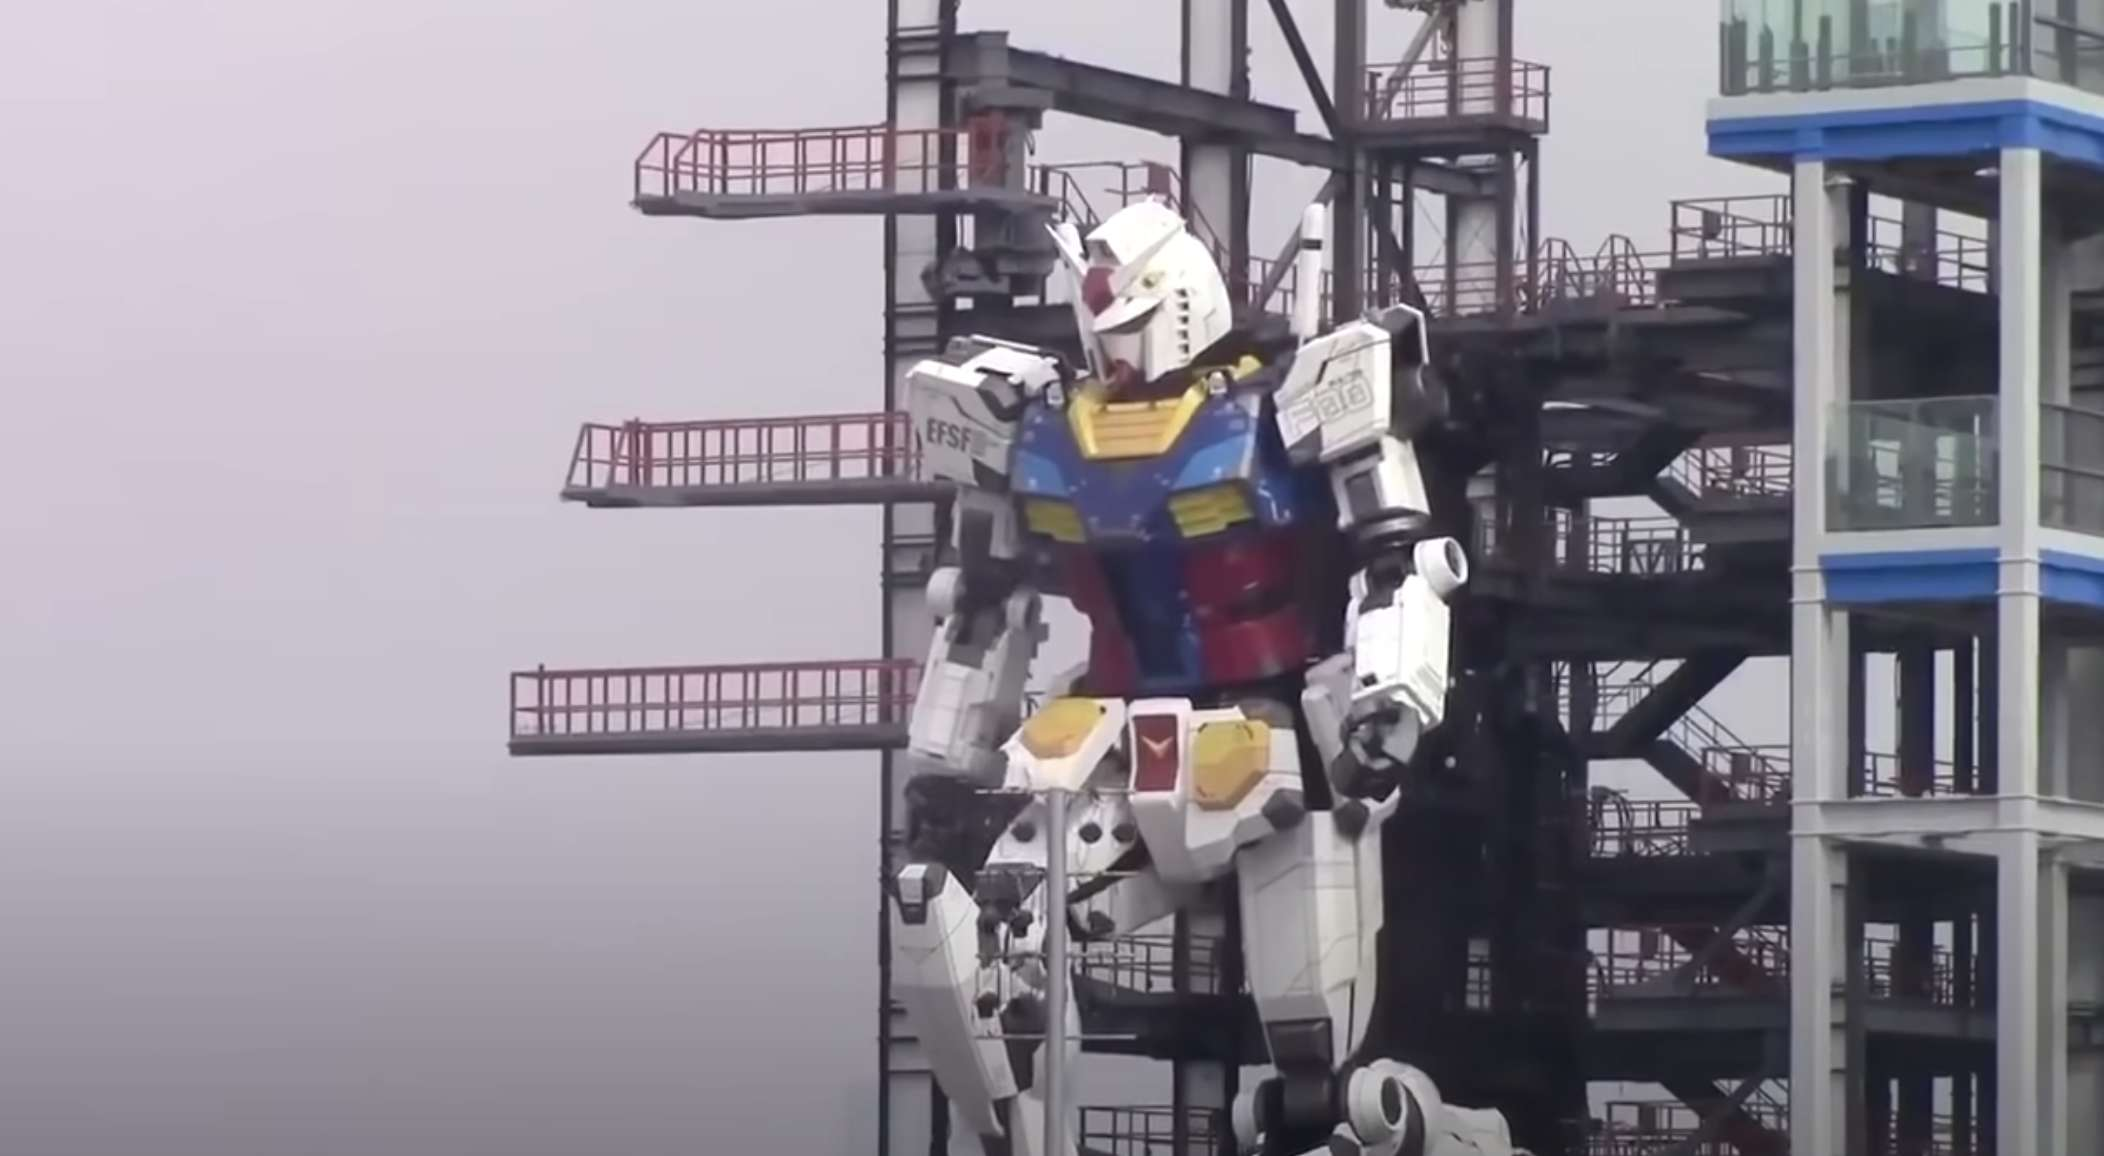 New video shows Japan's noble 60-foot-tall Gundam robot taking a knee